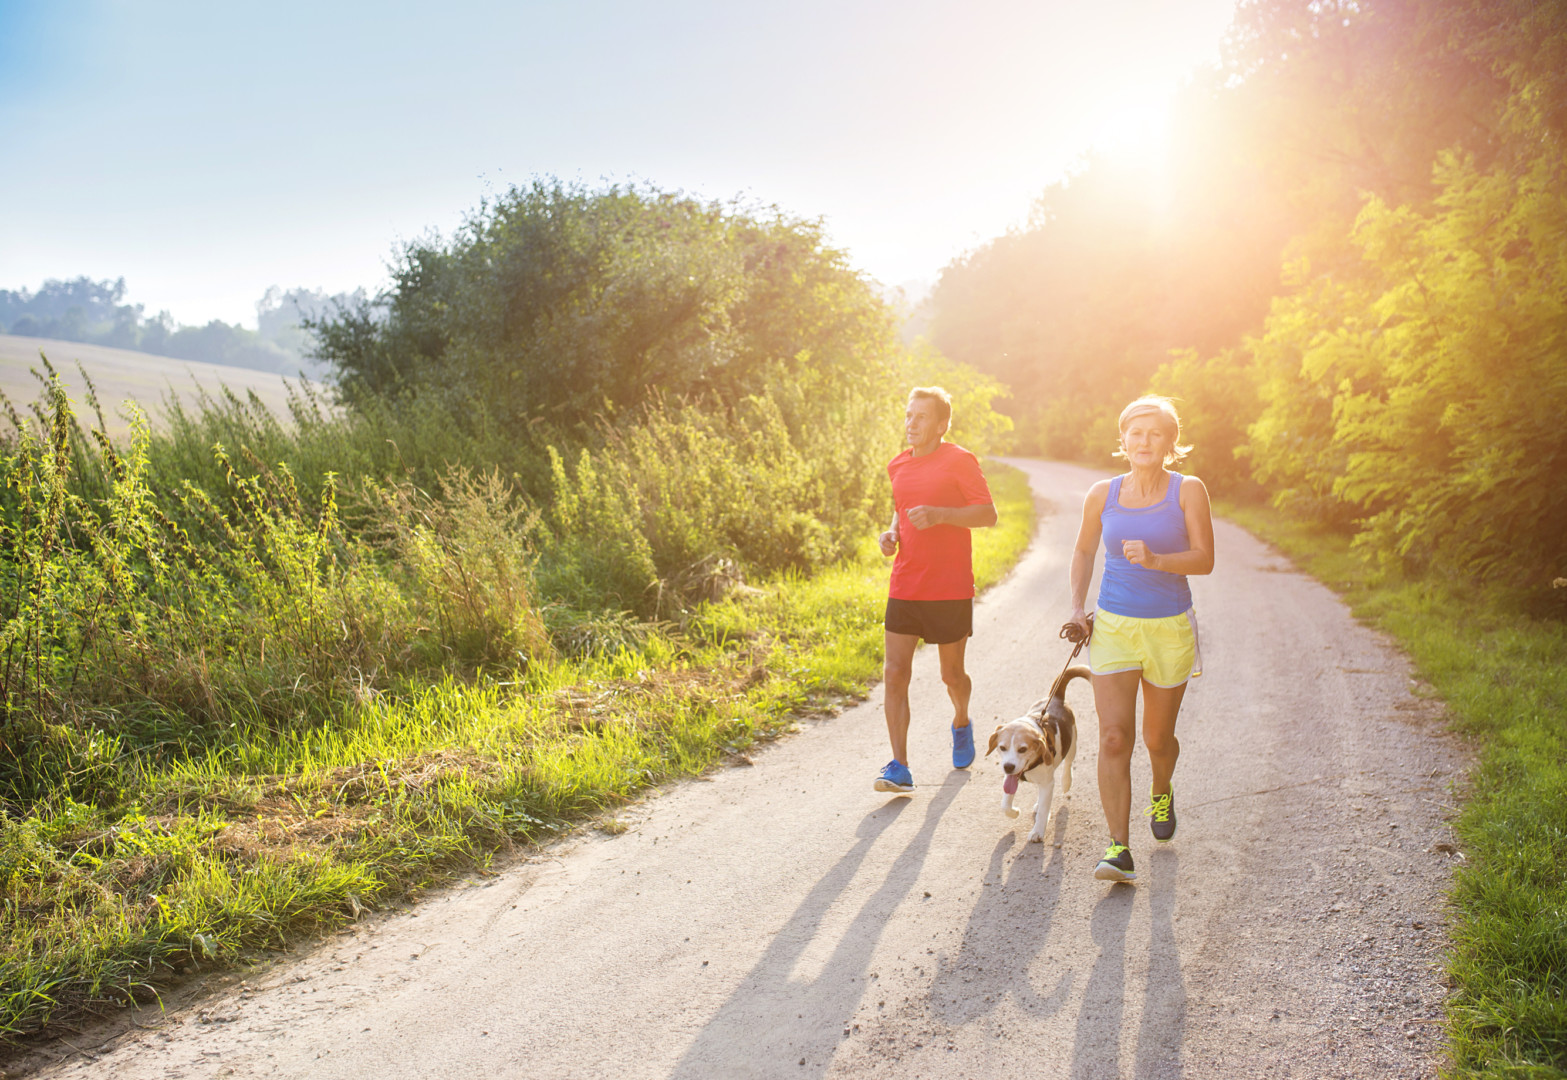 Male and female runners jogging on a paved trail with a small dog